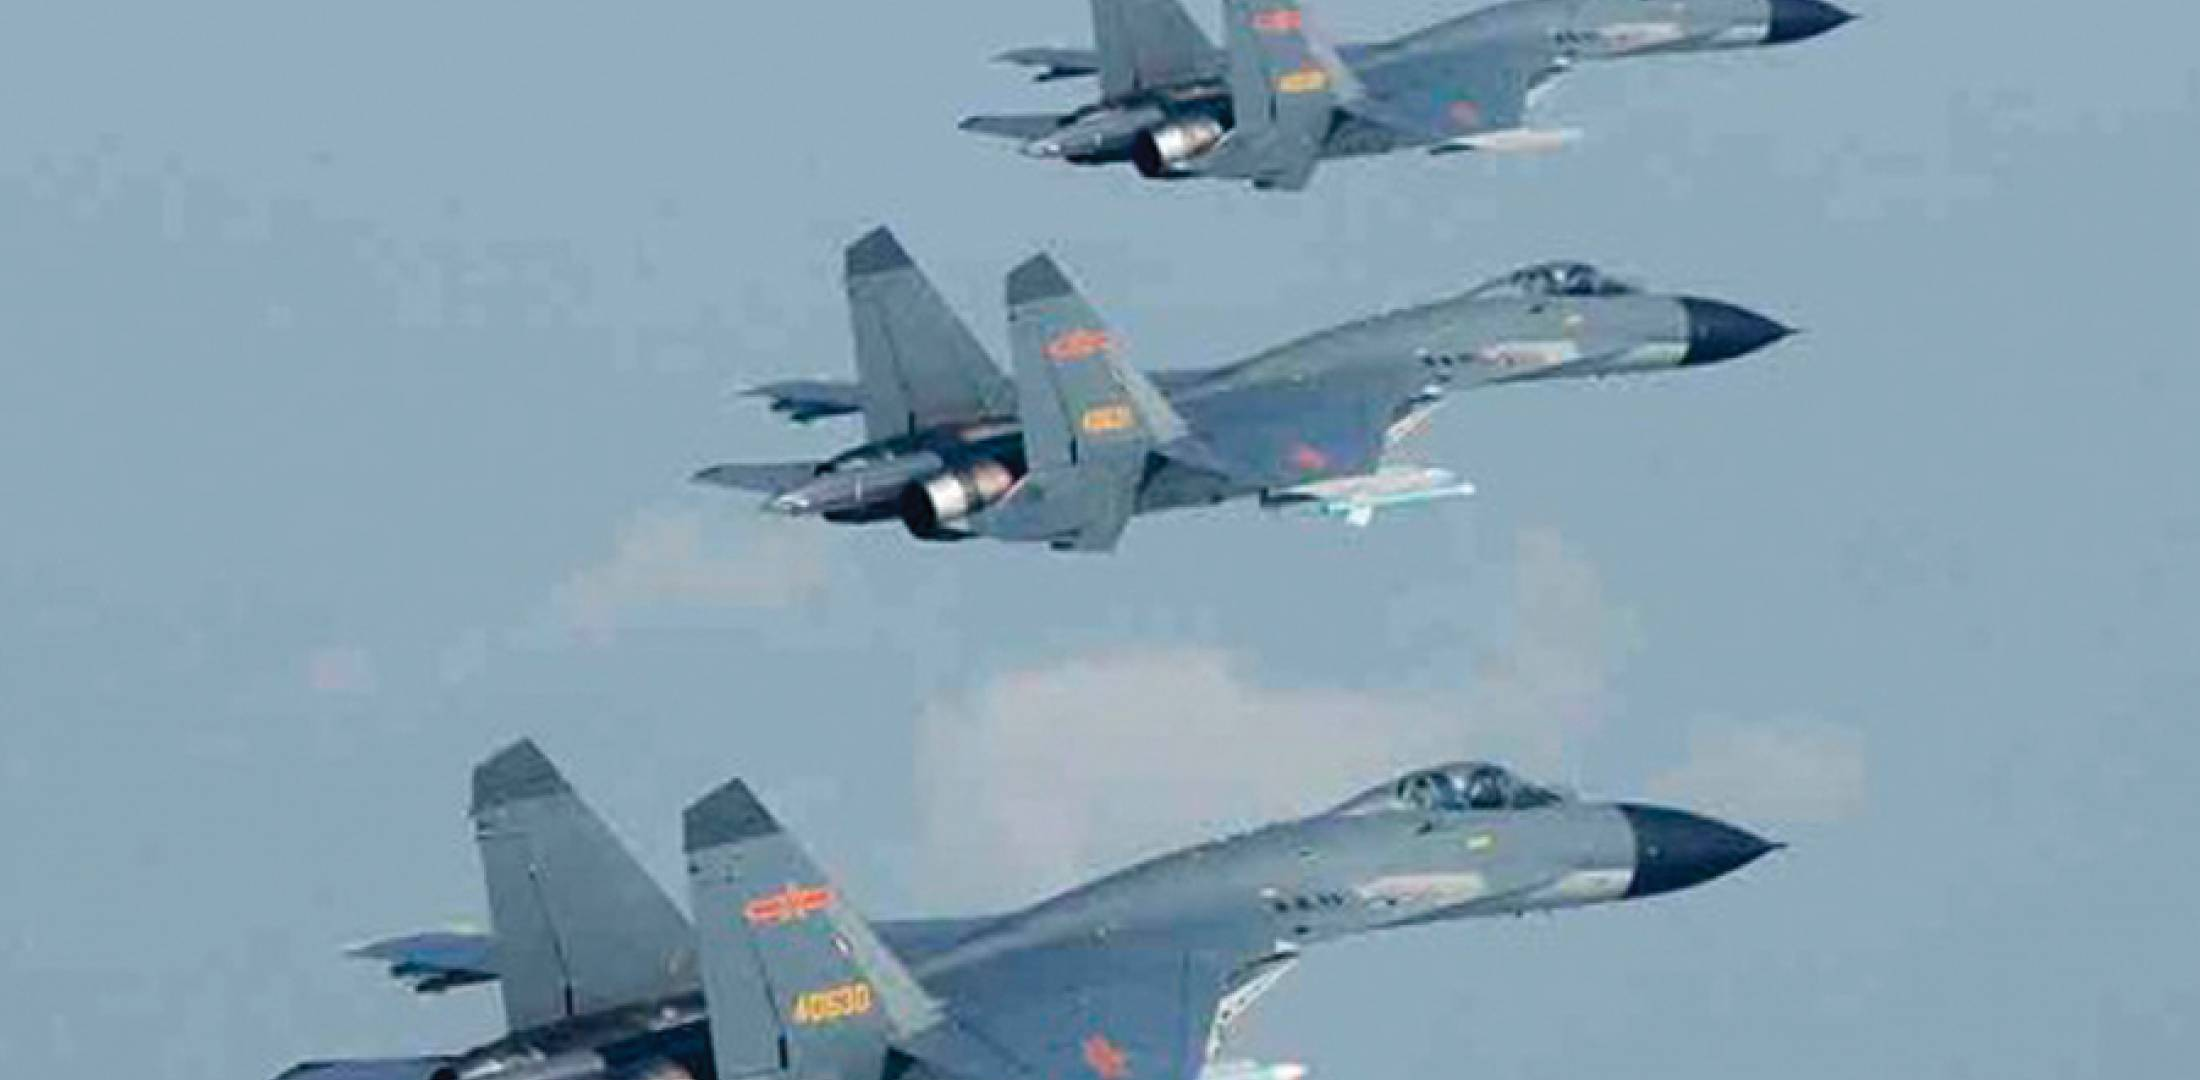 The J-11B is now in widespread service with both the PLAAF and PLANAF, and current production aircraft like these are powered by Chinese engines. The single-seaters are supported by two-seat J-11BS aircraft (via Chinese internet).